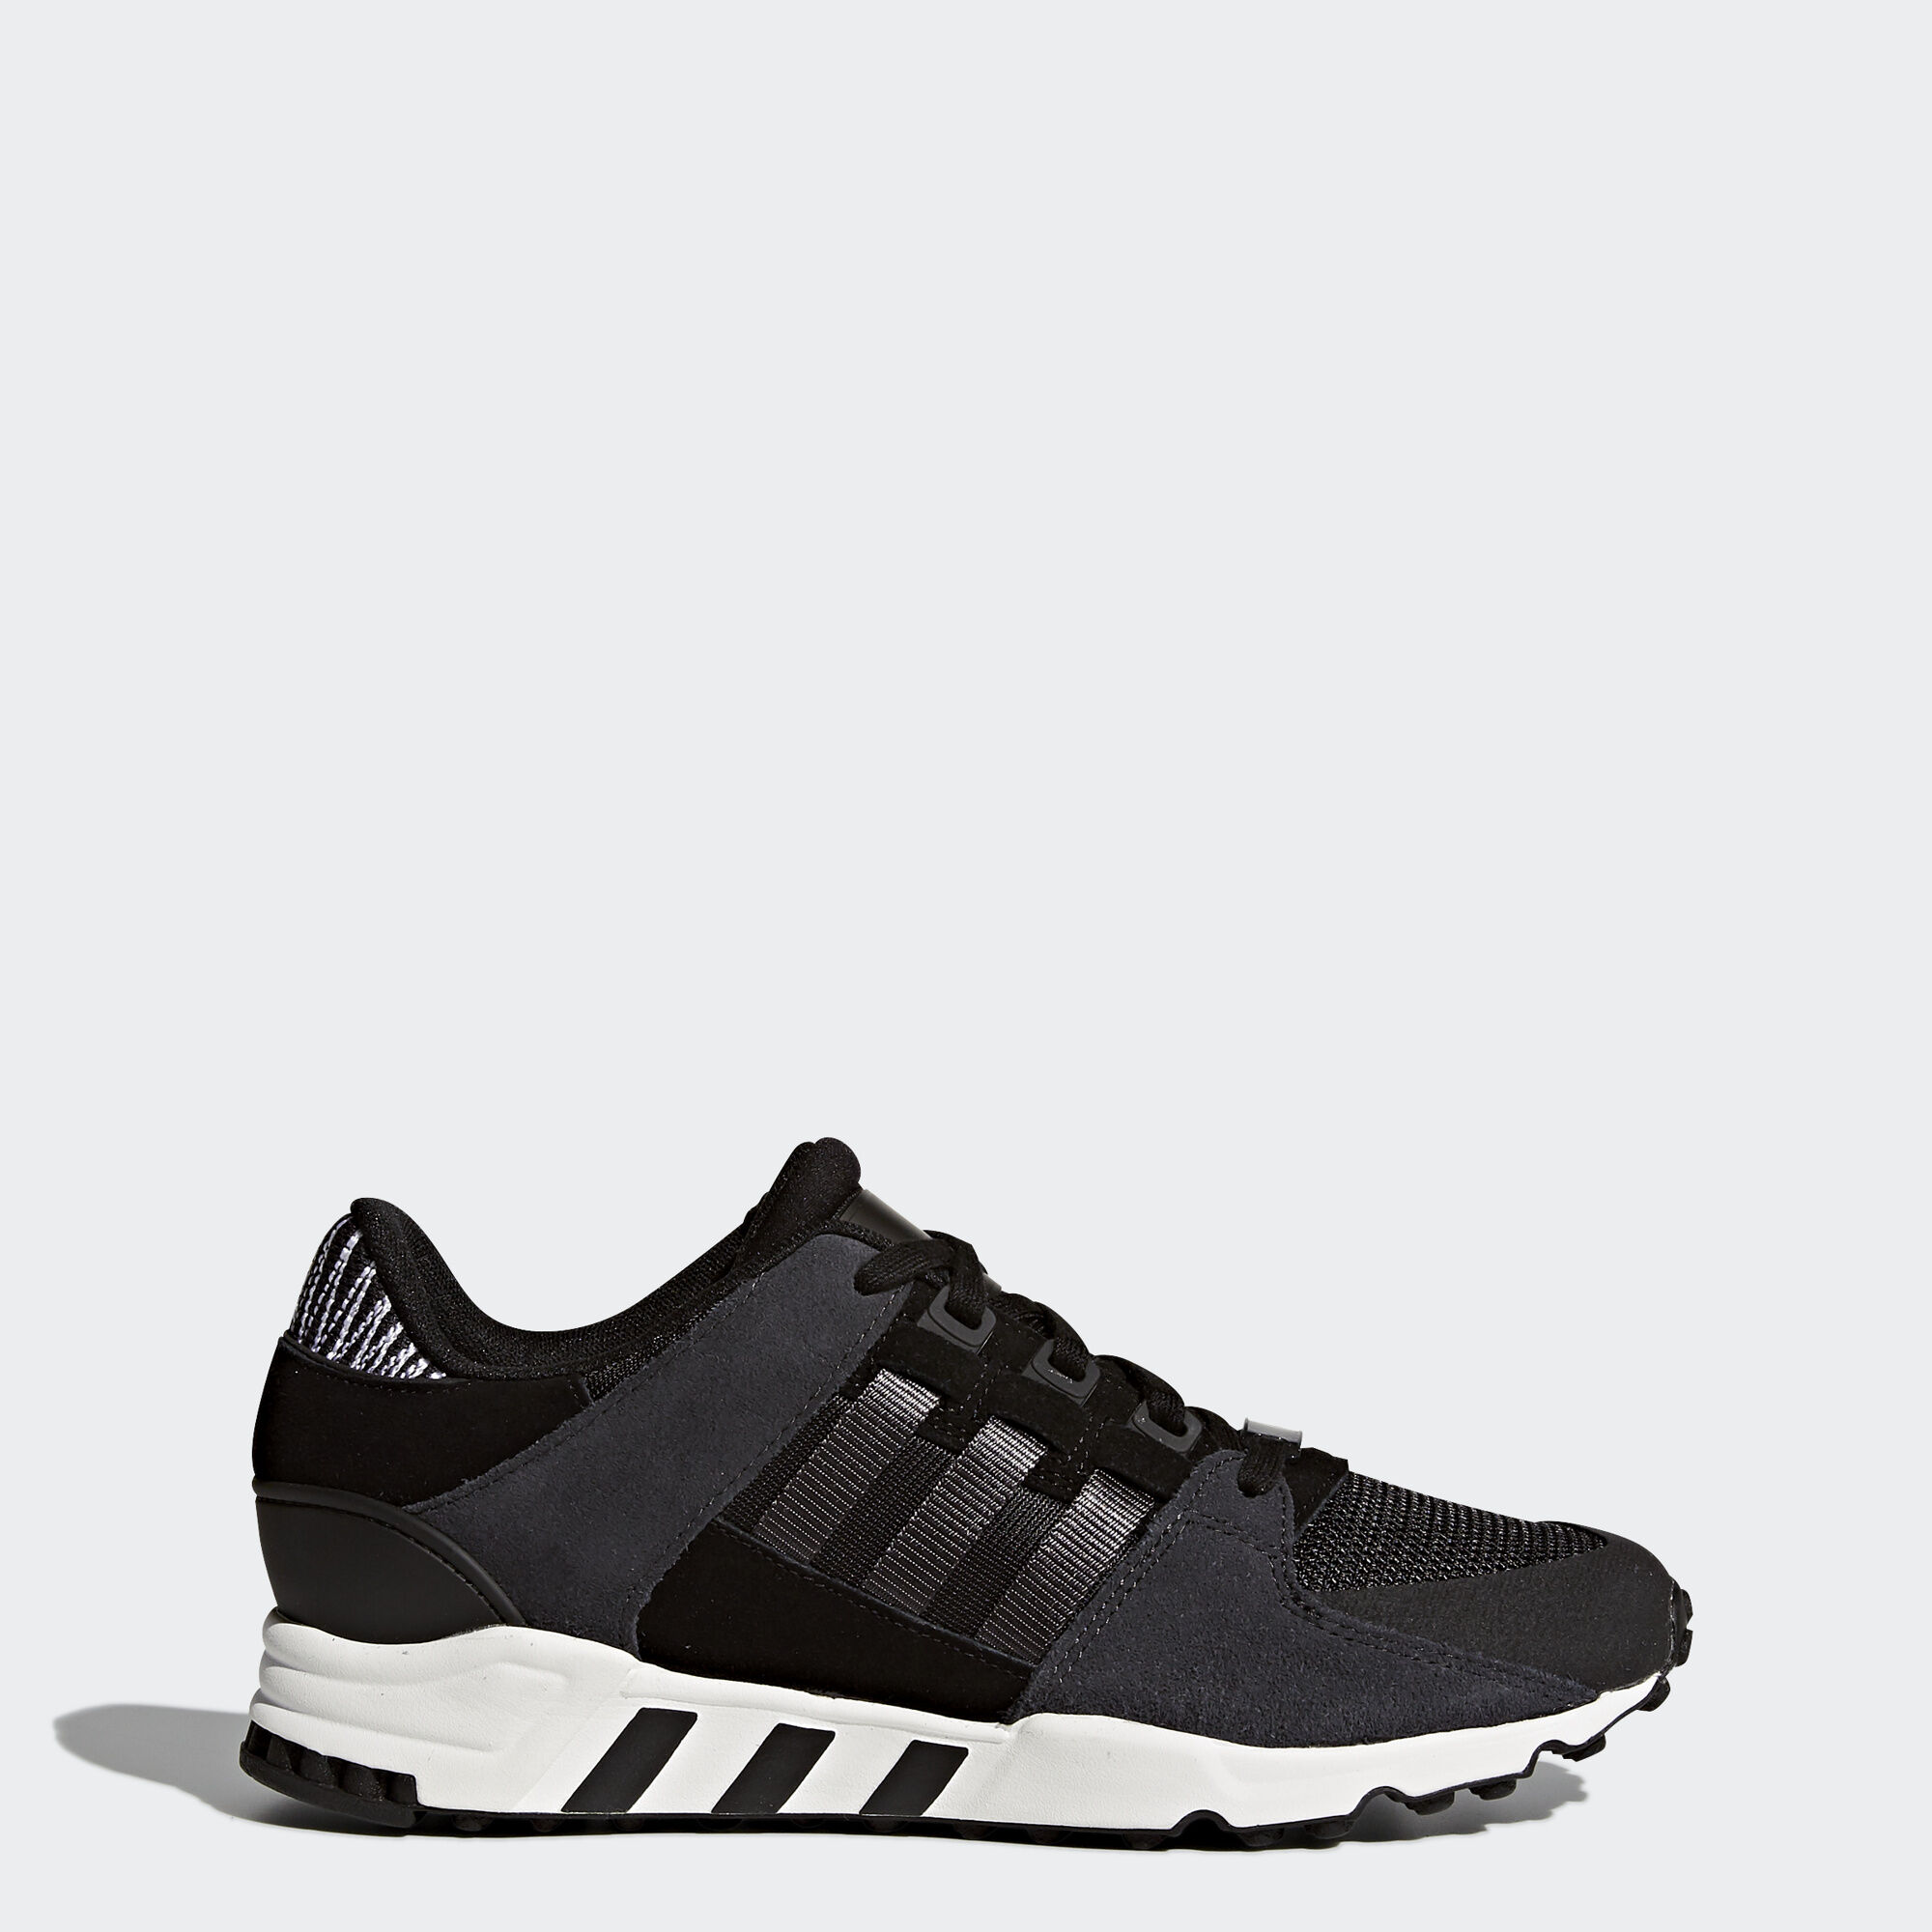 adidas - EQT Support RF Shoes Core Black/Carbon/Footwear White BY9623